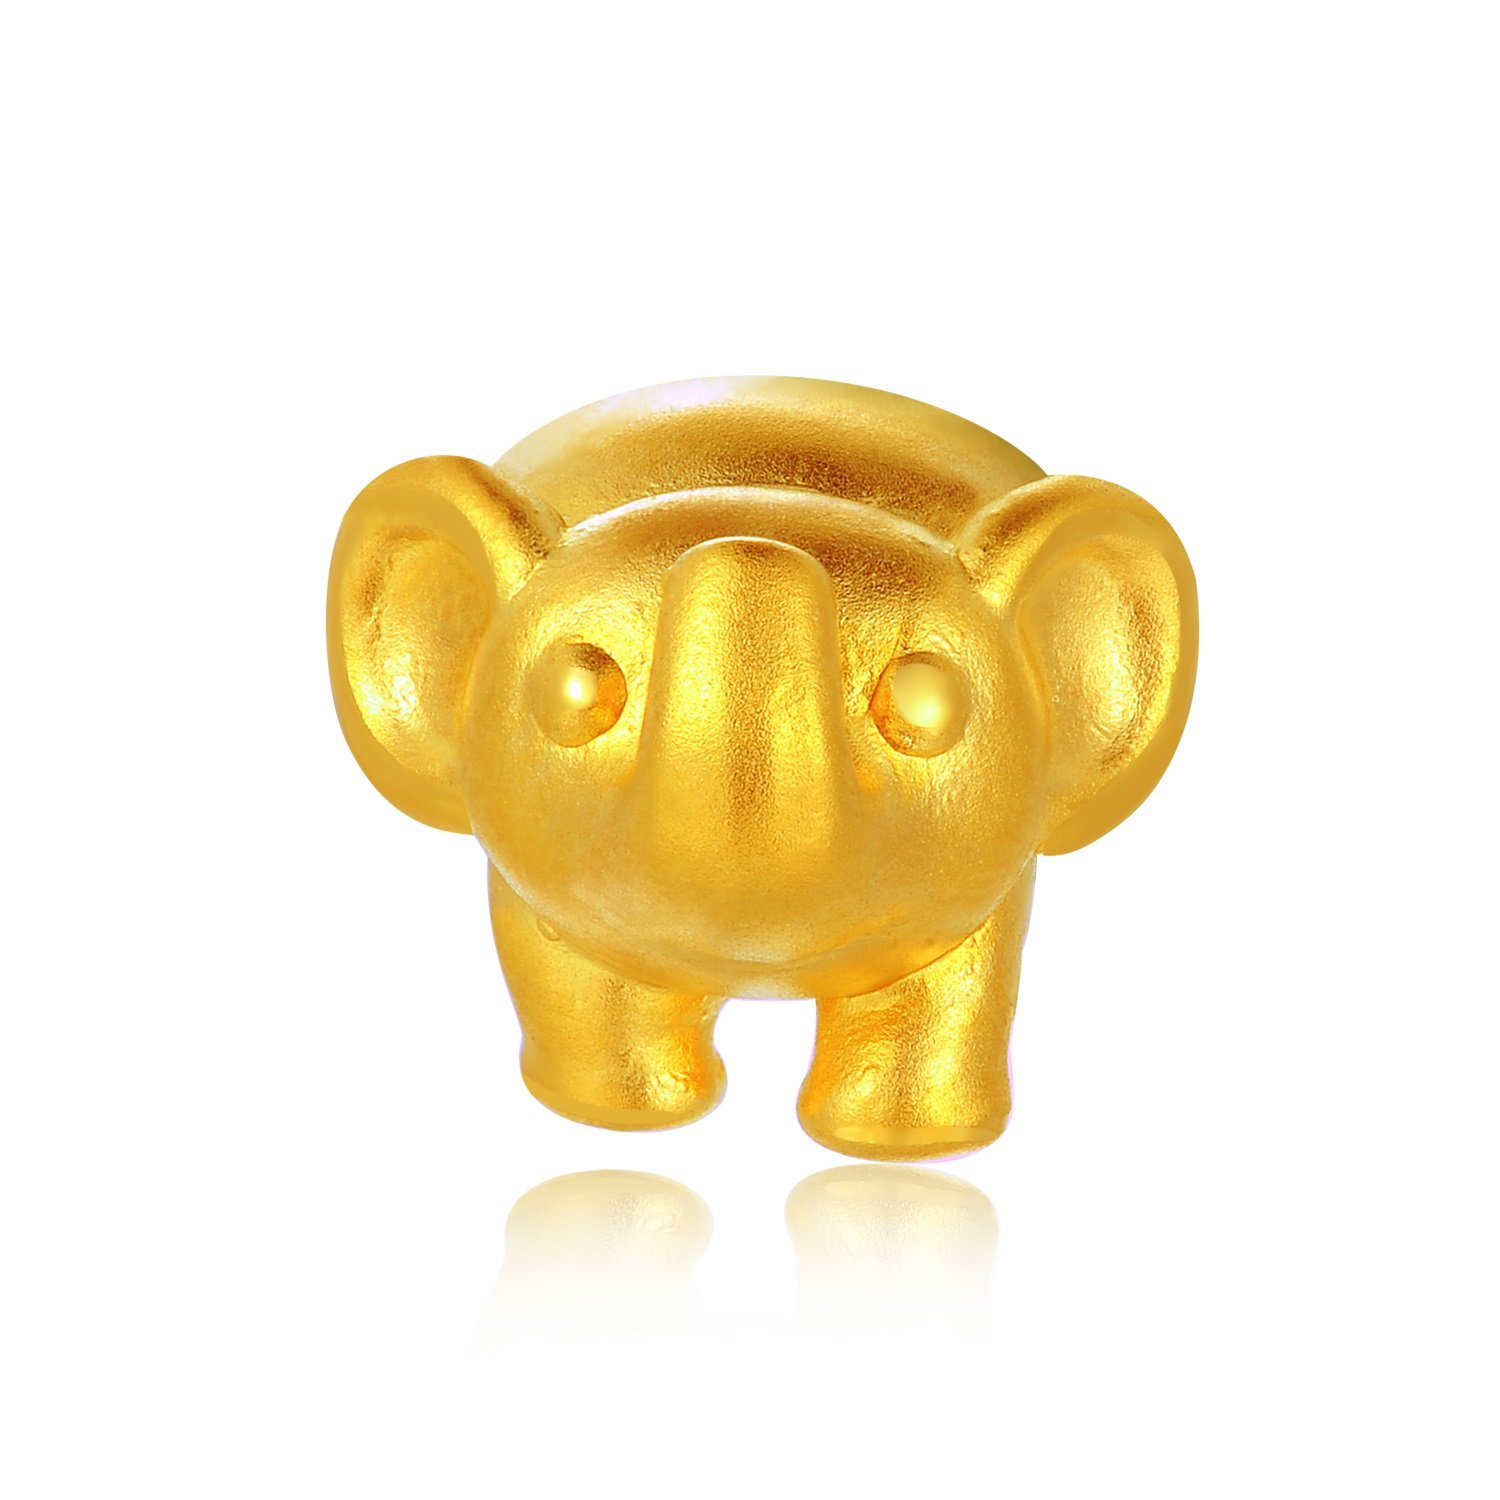 MaBelle 24K Gold Baby Fortune Hypoallergenic Charm Bracelet Baby Elephant, Gift For Newborn Baby Boys and Girls